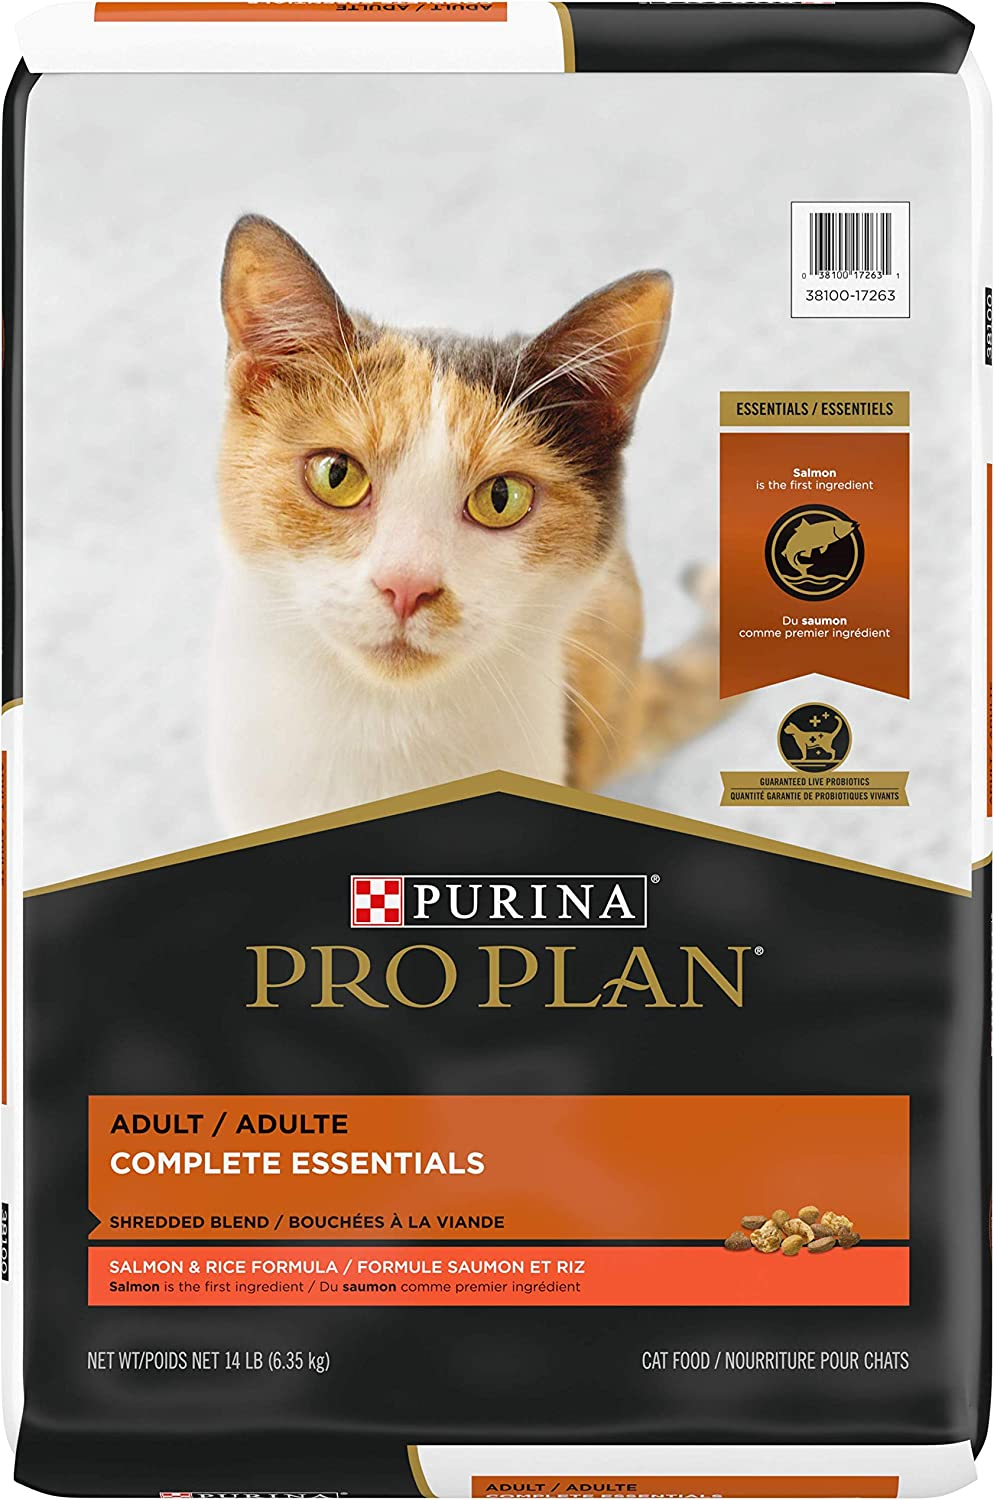 Purina Pro Plan with Probiotics High Protein Adult Dry Cat Food (Packaging May Vary)